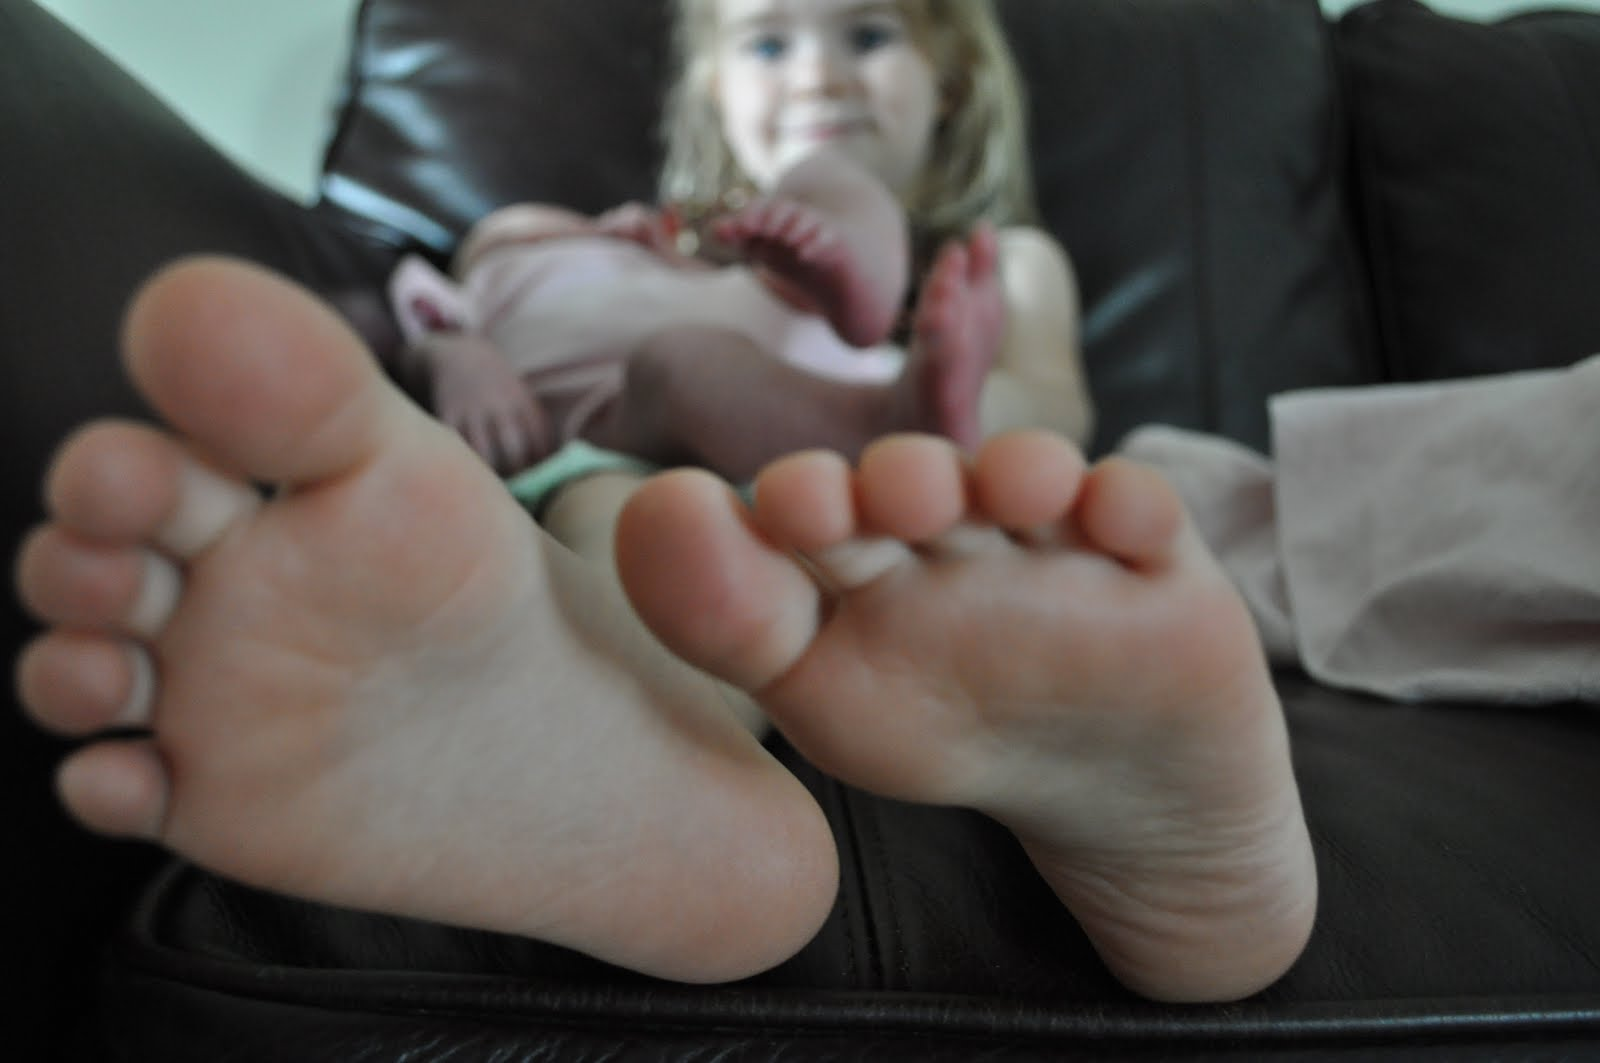 Teen smelling her feet after partying 4